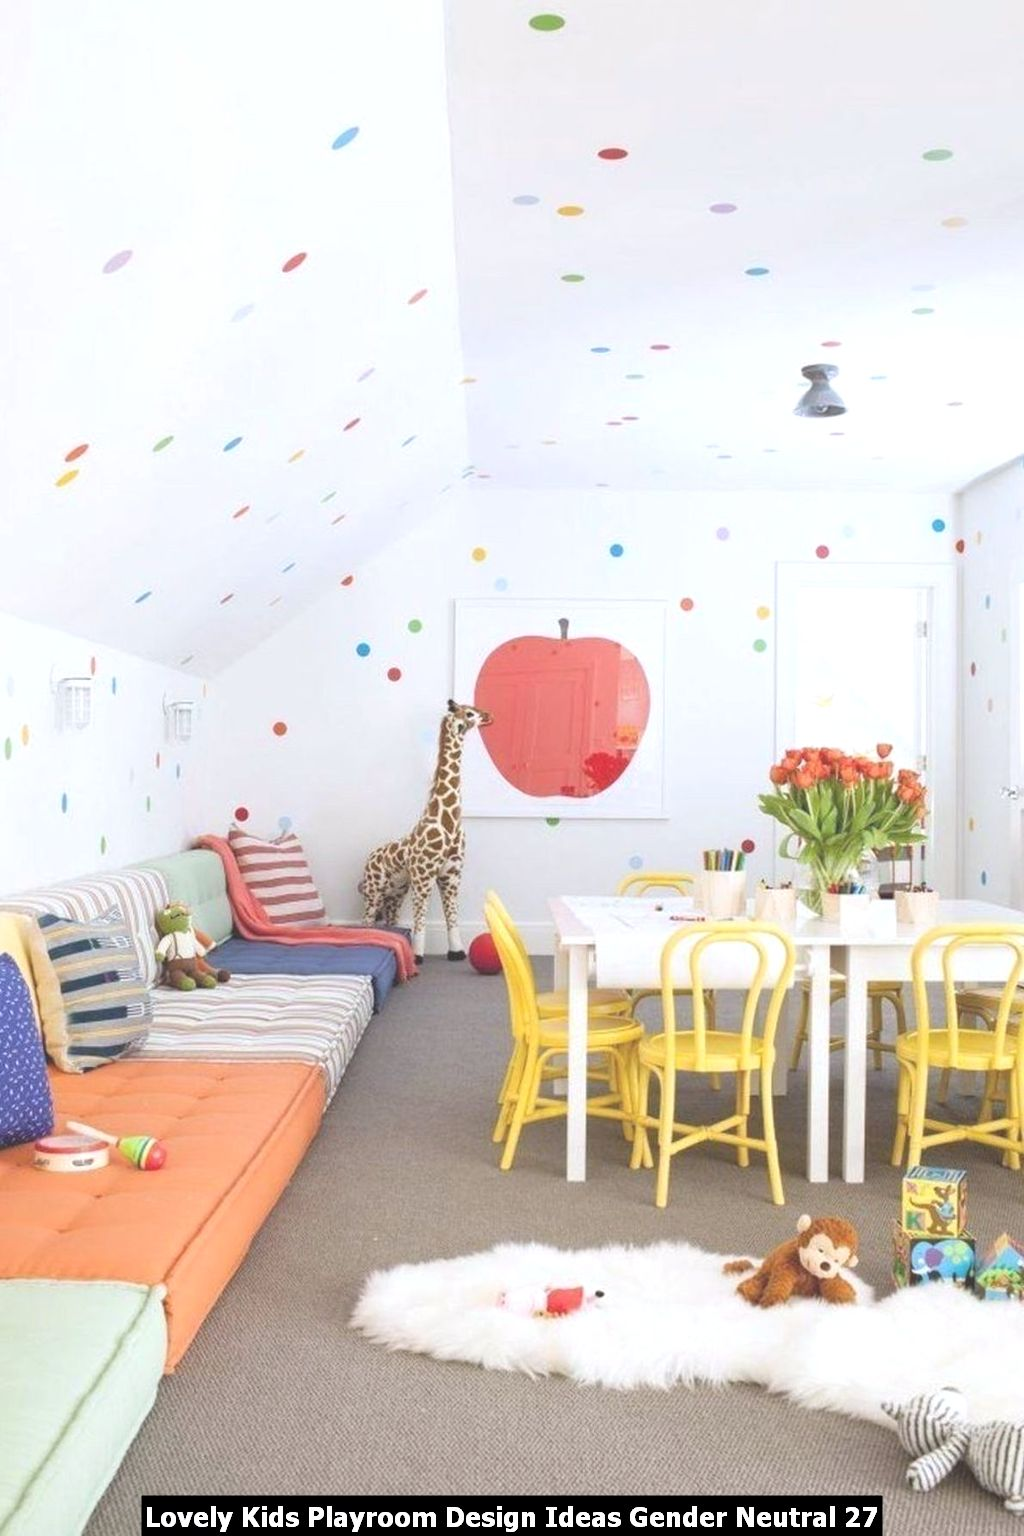 Lovely Kids Playroom Design Ideas Gender Neutral 27